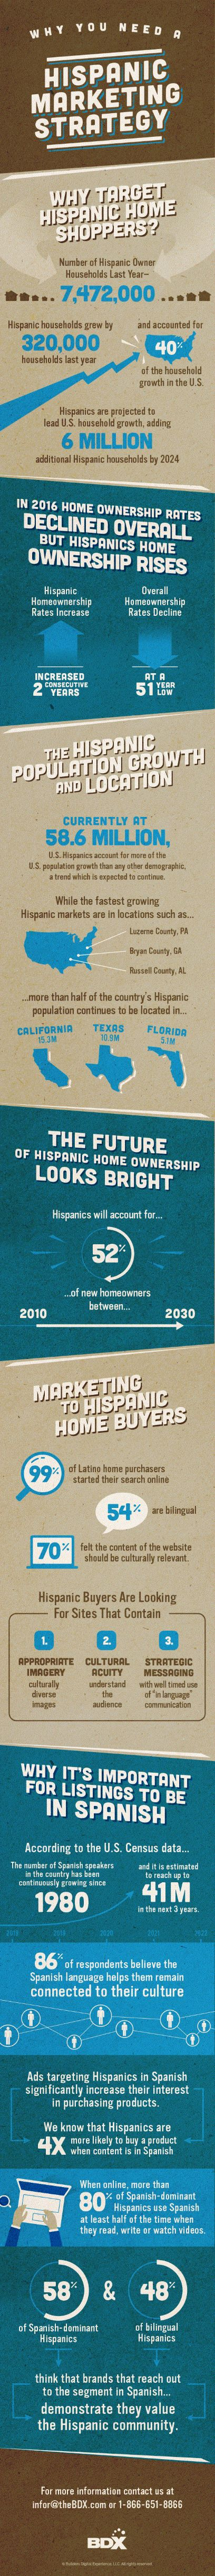 Infographic Relays Demographics About Hispanic Community and Opportunities That Await Homebuilders